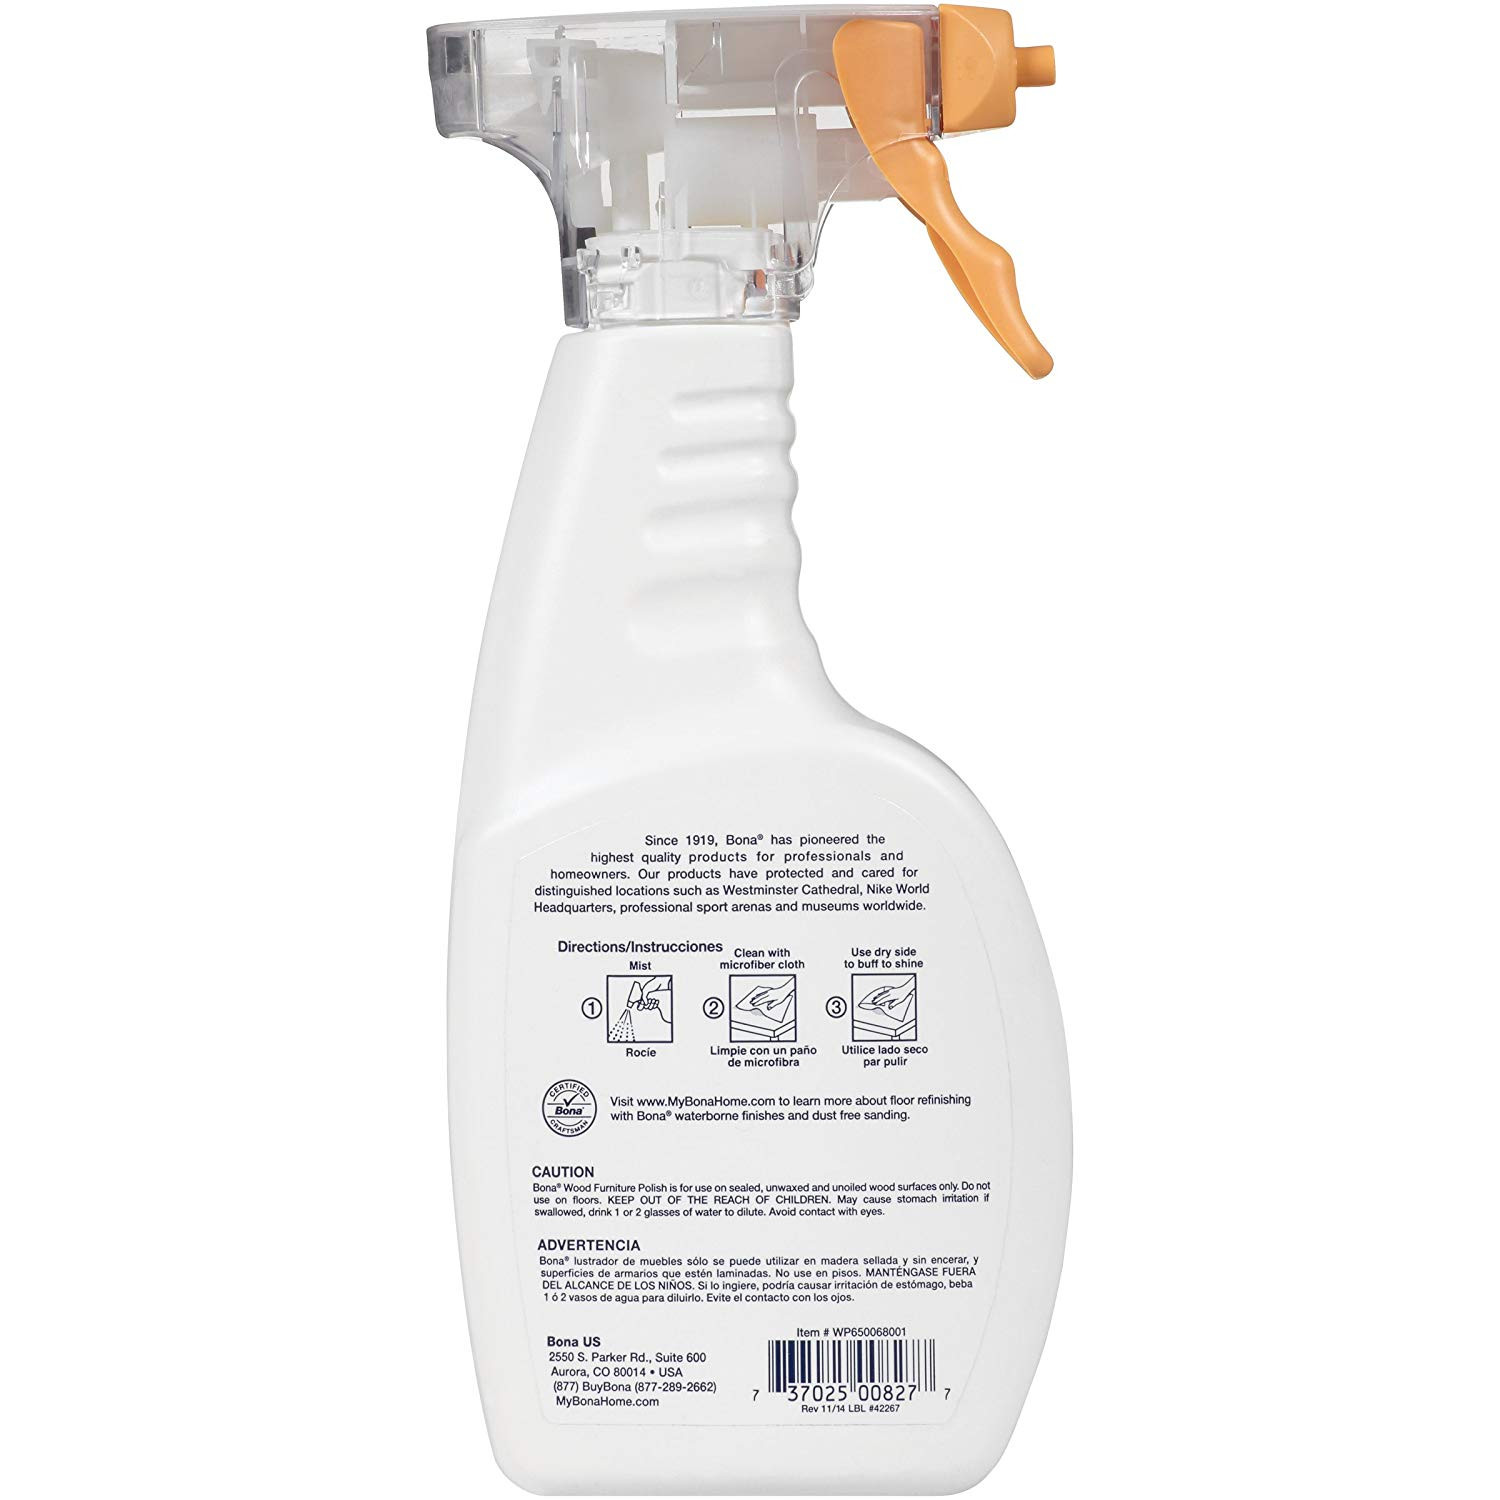 bona hardwood floor cleaner uk of buy bona wood furniture polish 12 ounce online at low prices in in buy bona wood furniture polish 12 ounce online at low prices in india amazon in